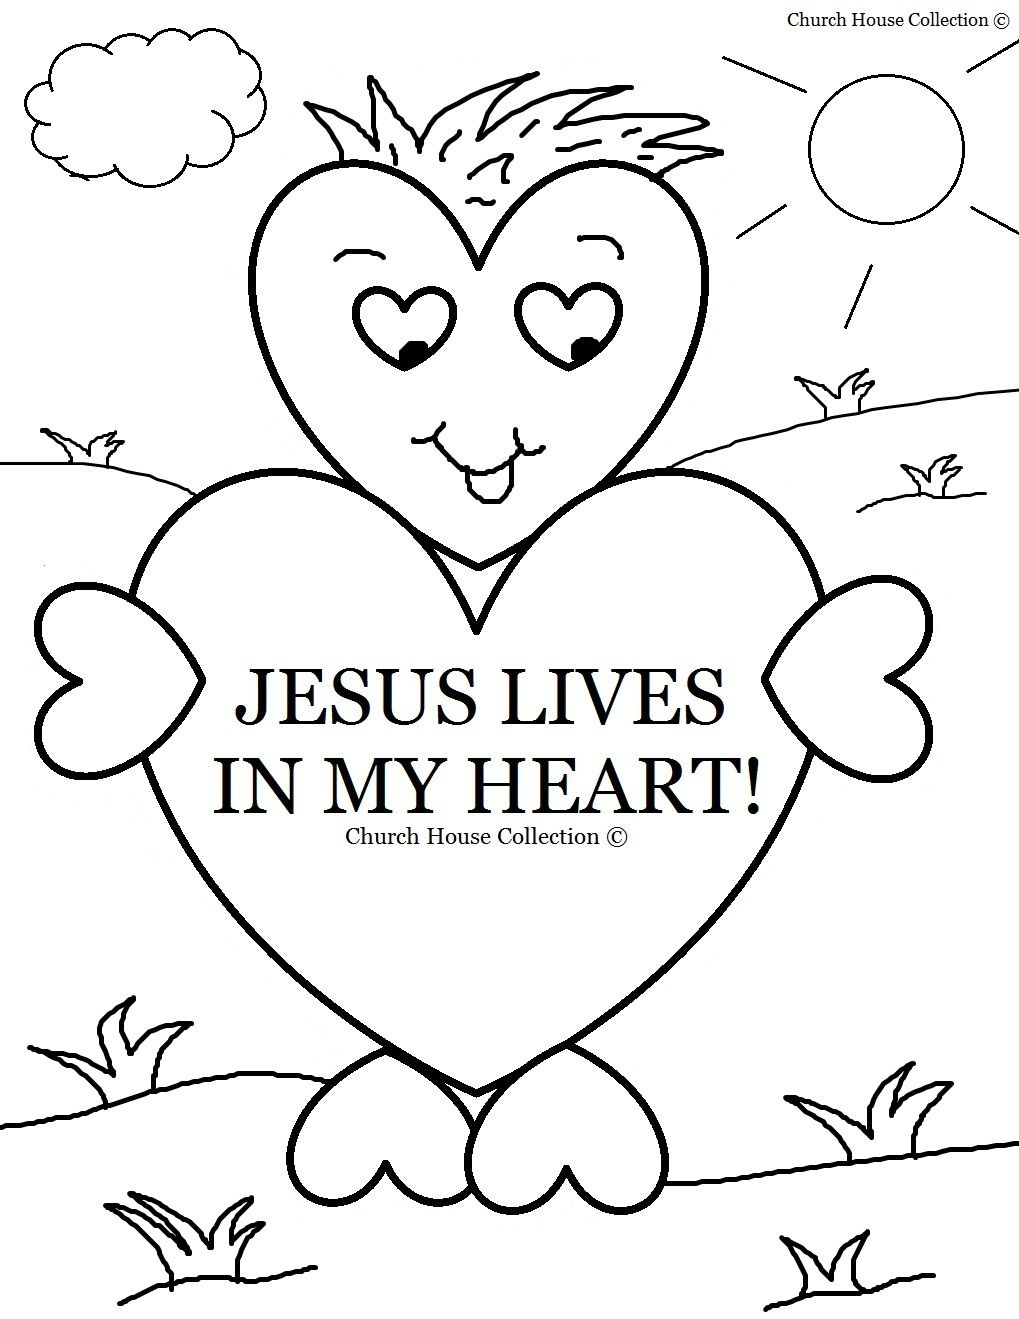 sunday school coloring pages lives in my heart coloring page for sunday - School Coloring Sheets